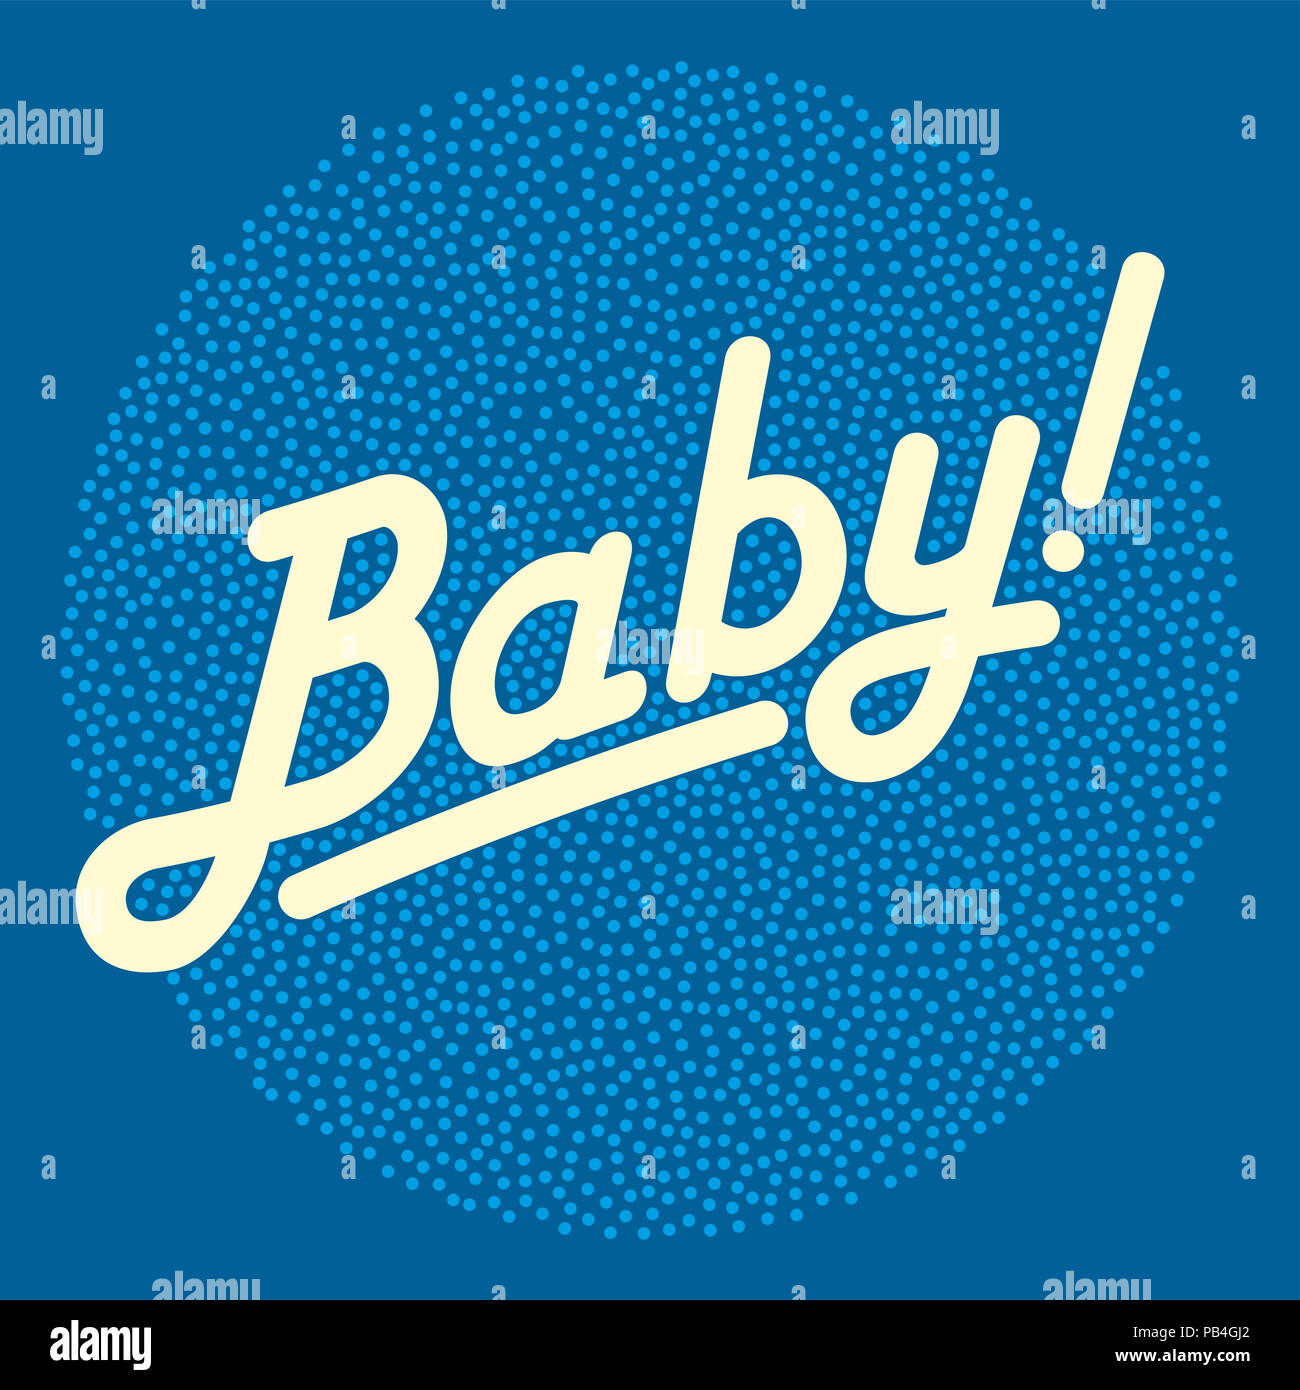 Cursive lettering of the word BABY in light yellow color, over bright stippled circle area, made of randomly placed small dots. Isolated illustration. - Stock Image